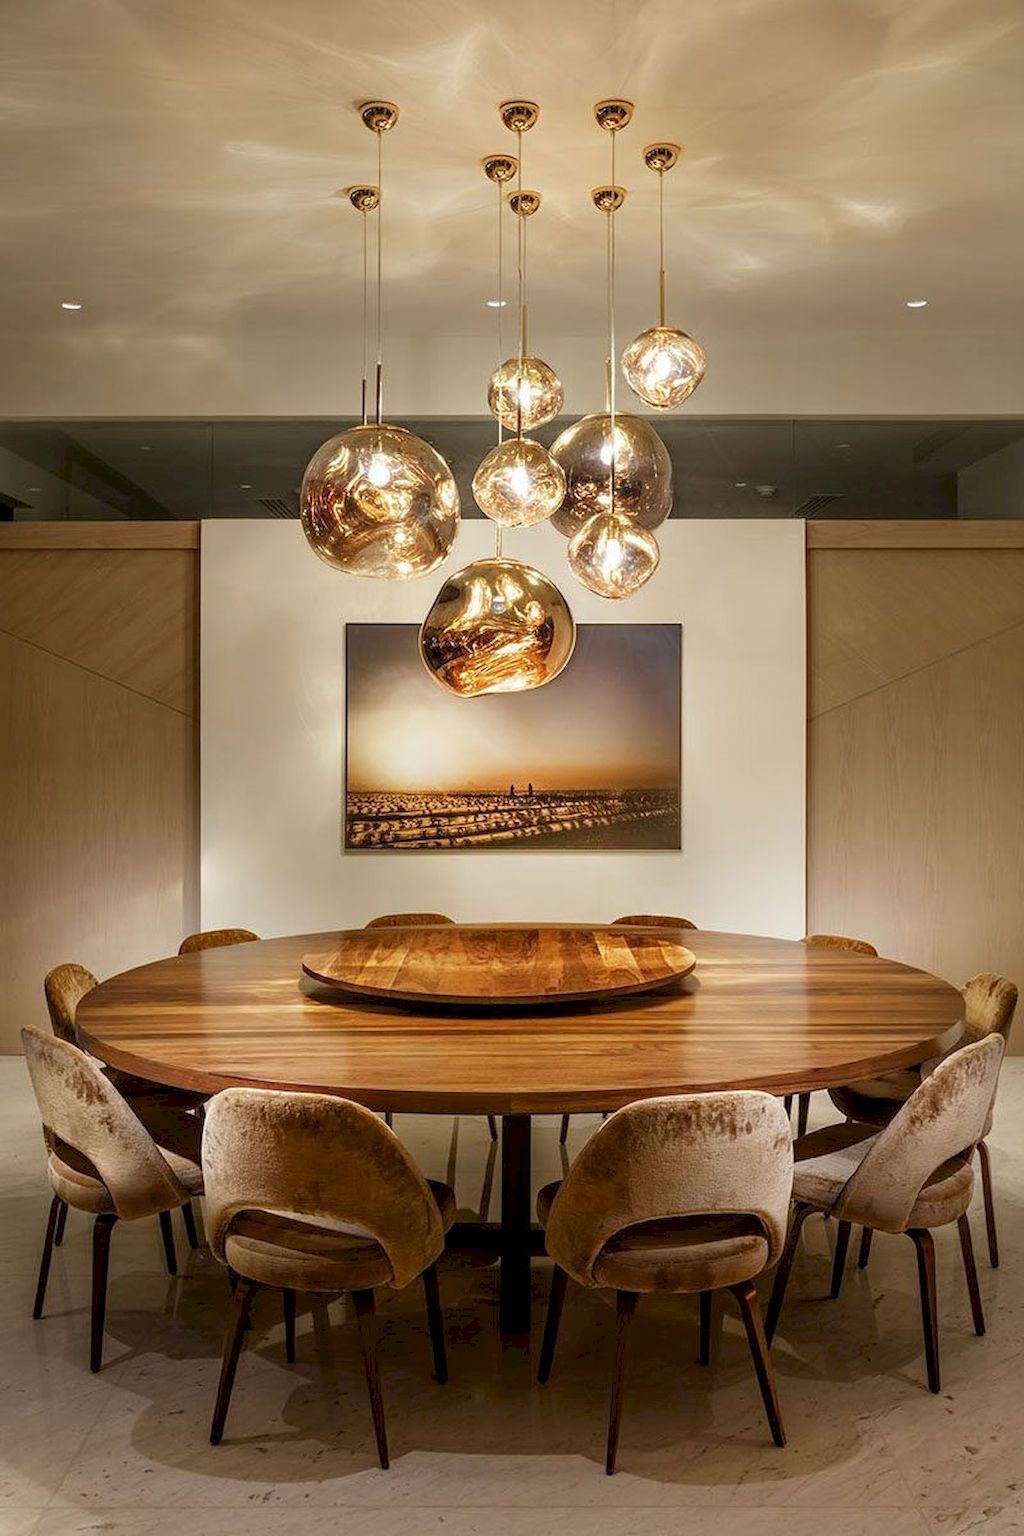 Round Dining Room Tables Decoration Ideas Home To Z Round Dining Room Dining Room Table Decor Modern Dining Room